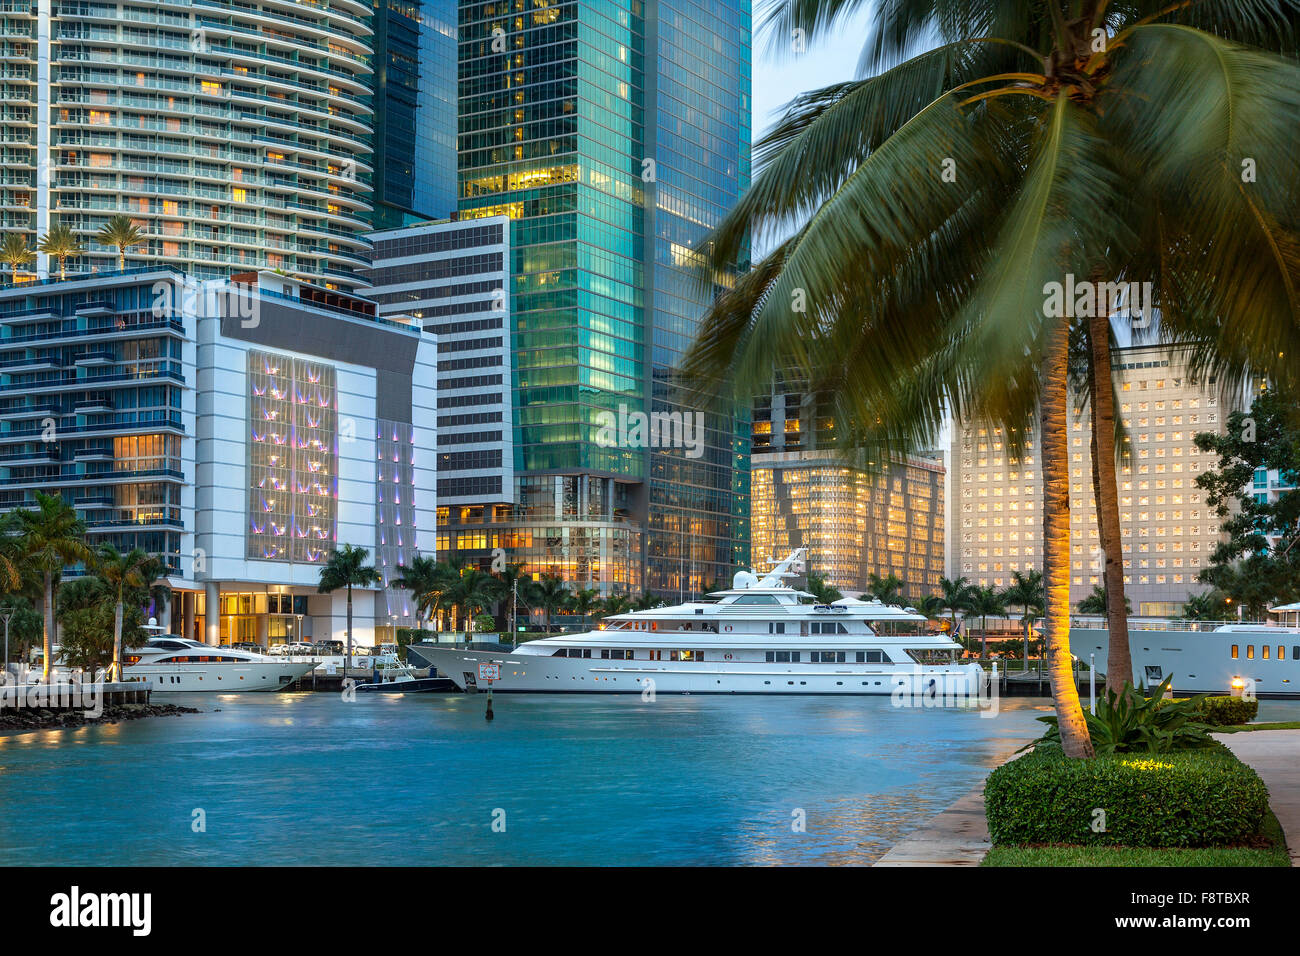 USA, Florida, Miami Downtown Photo Stock